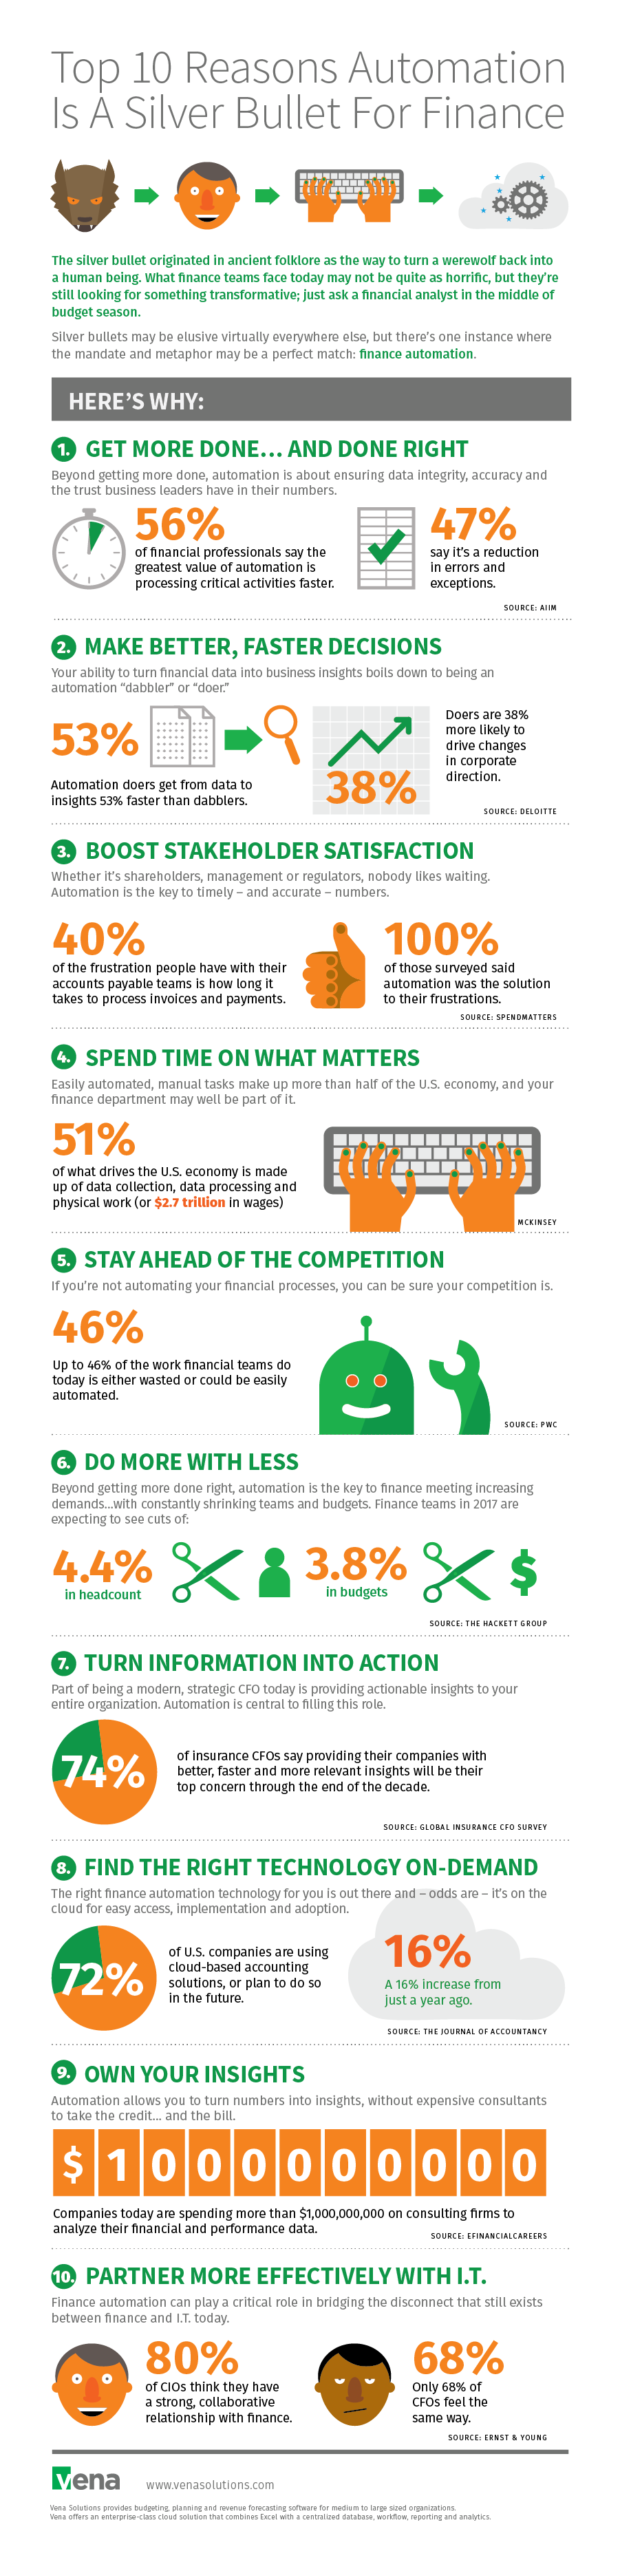 Infographic: 10 reasons automation is a silver bullet for finance